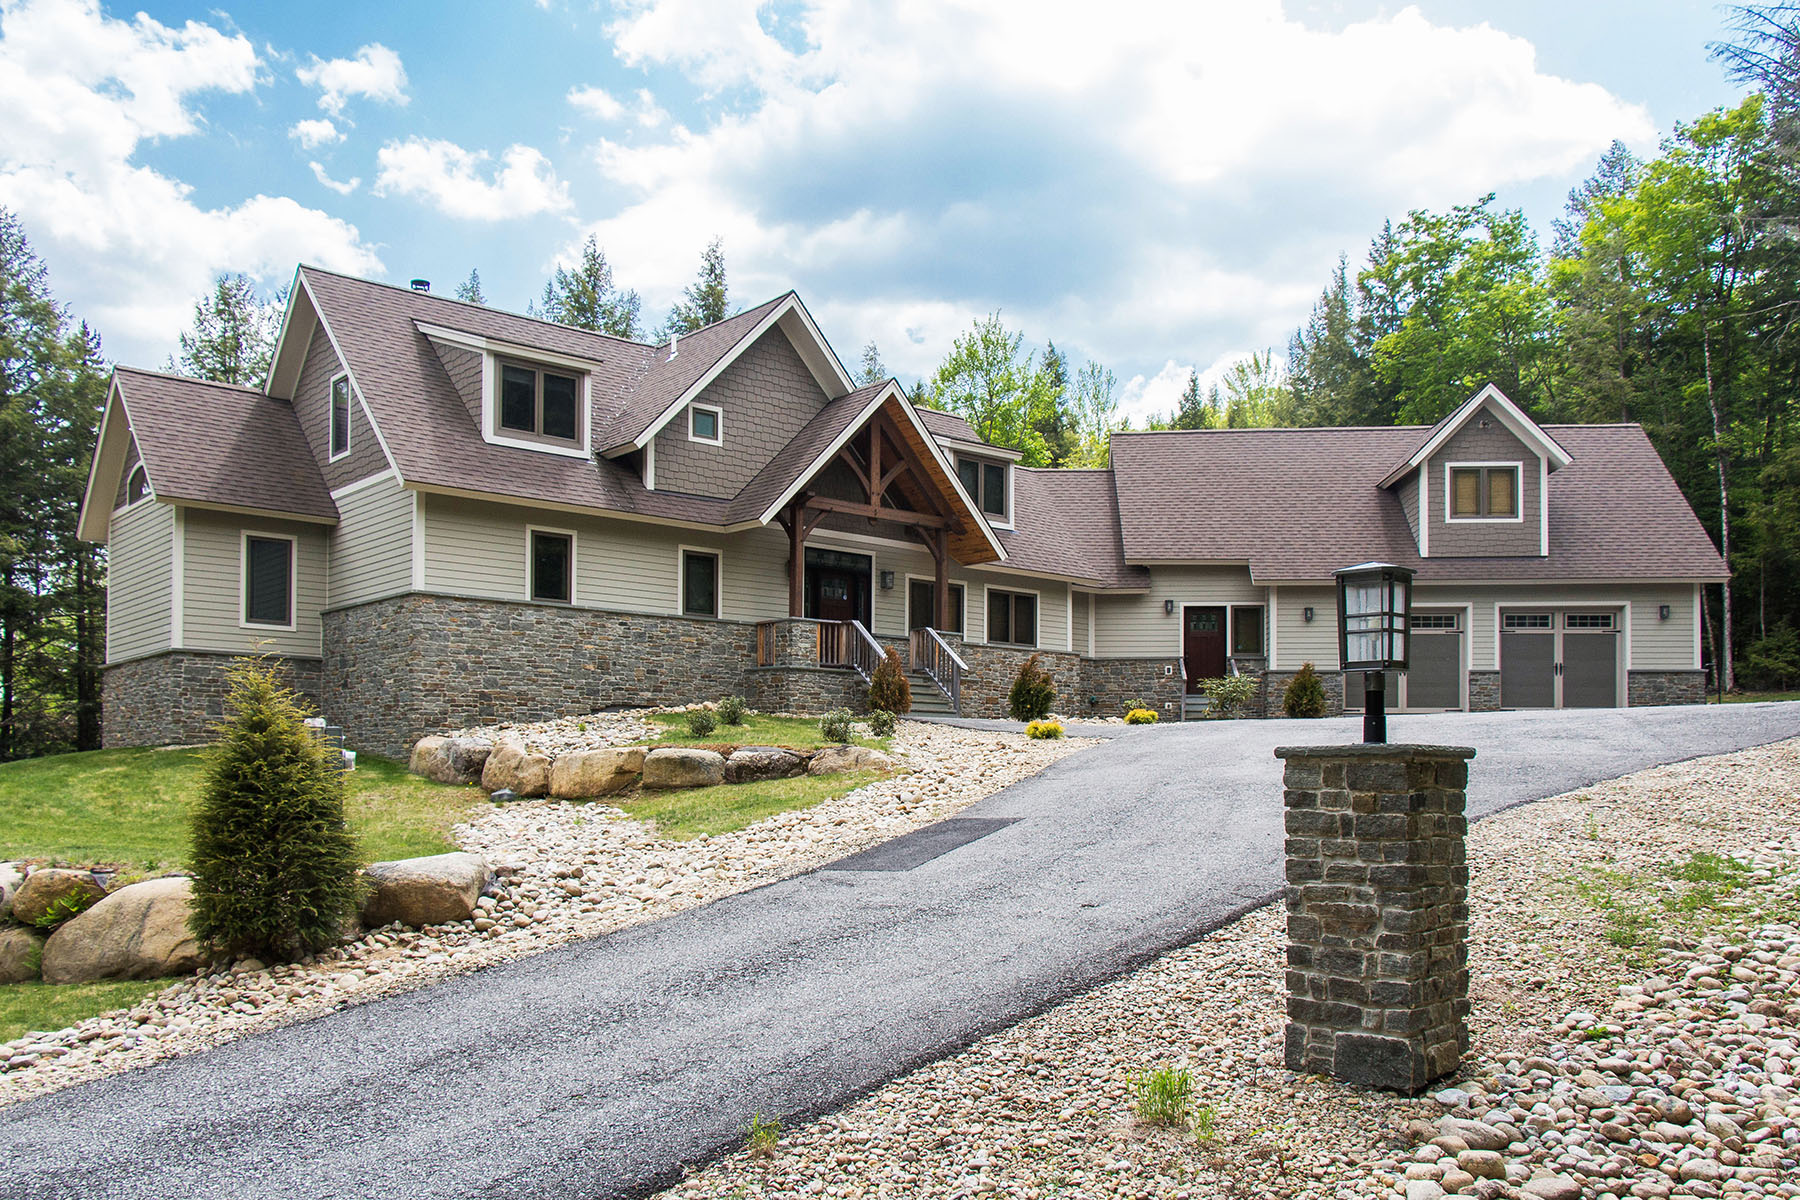 Single Family Home for Sale at Luxury Wood Pegged Timber Frame 15 Straight Brook Ln North Creek, New York 12853 United States